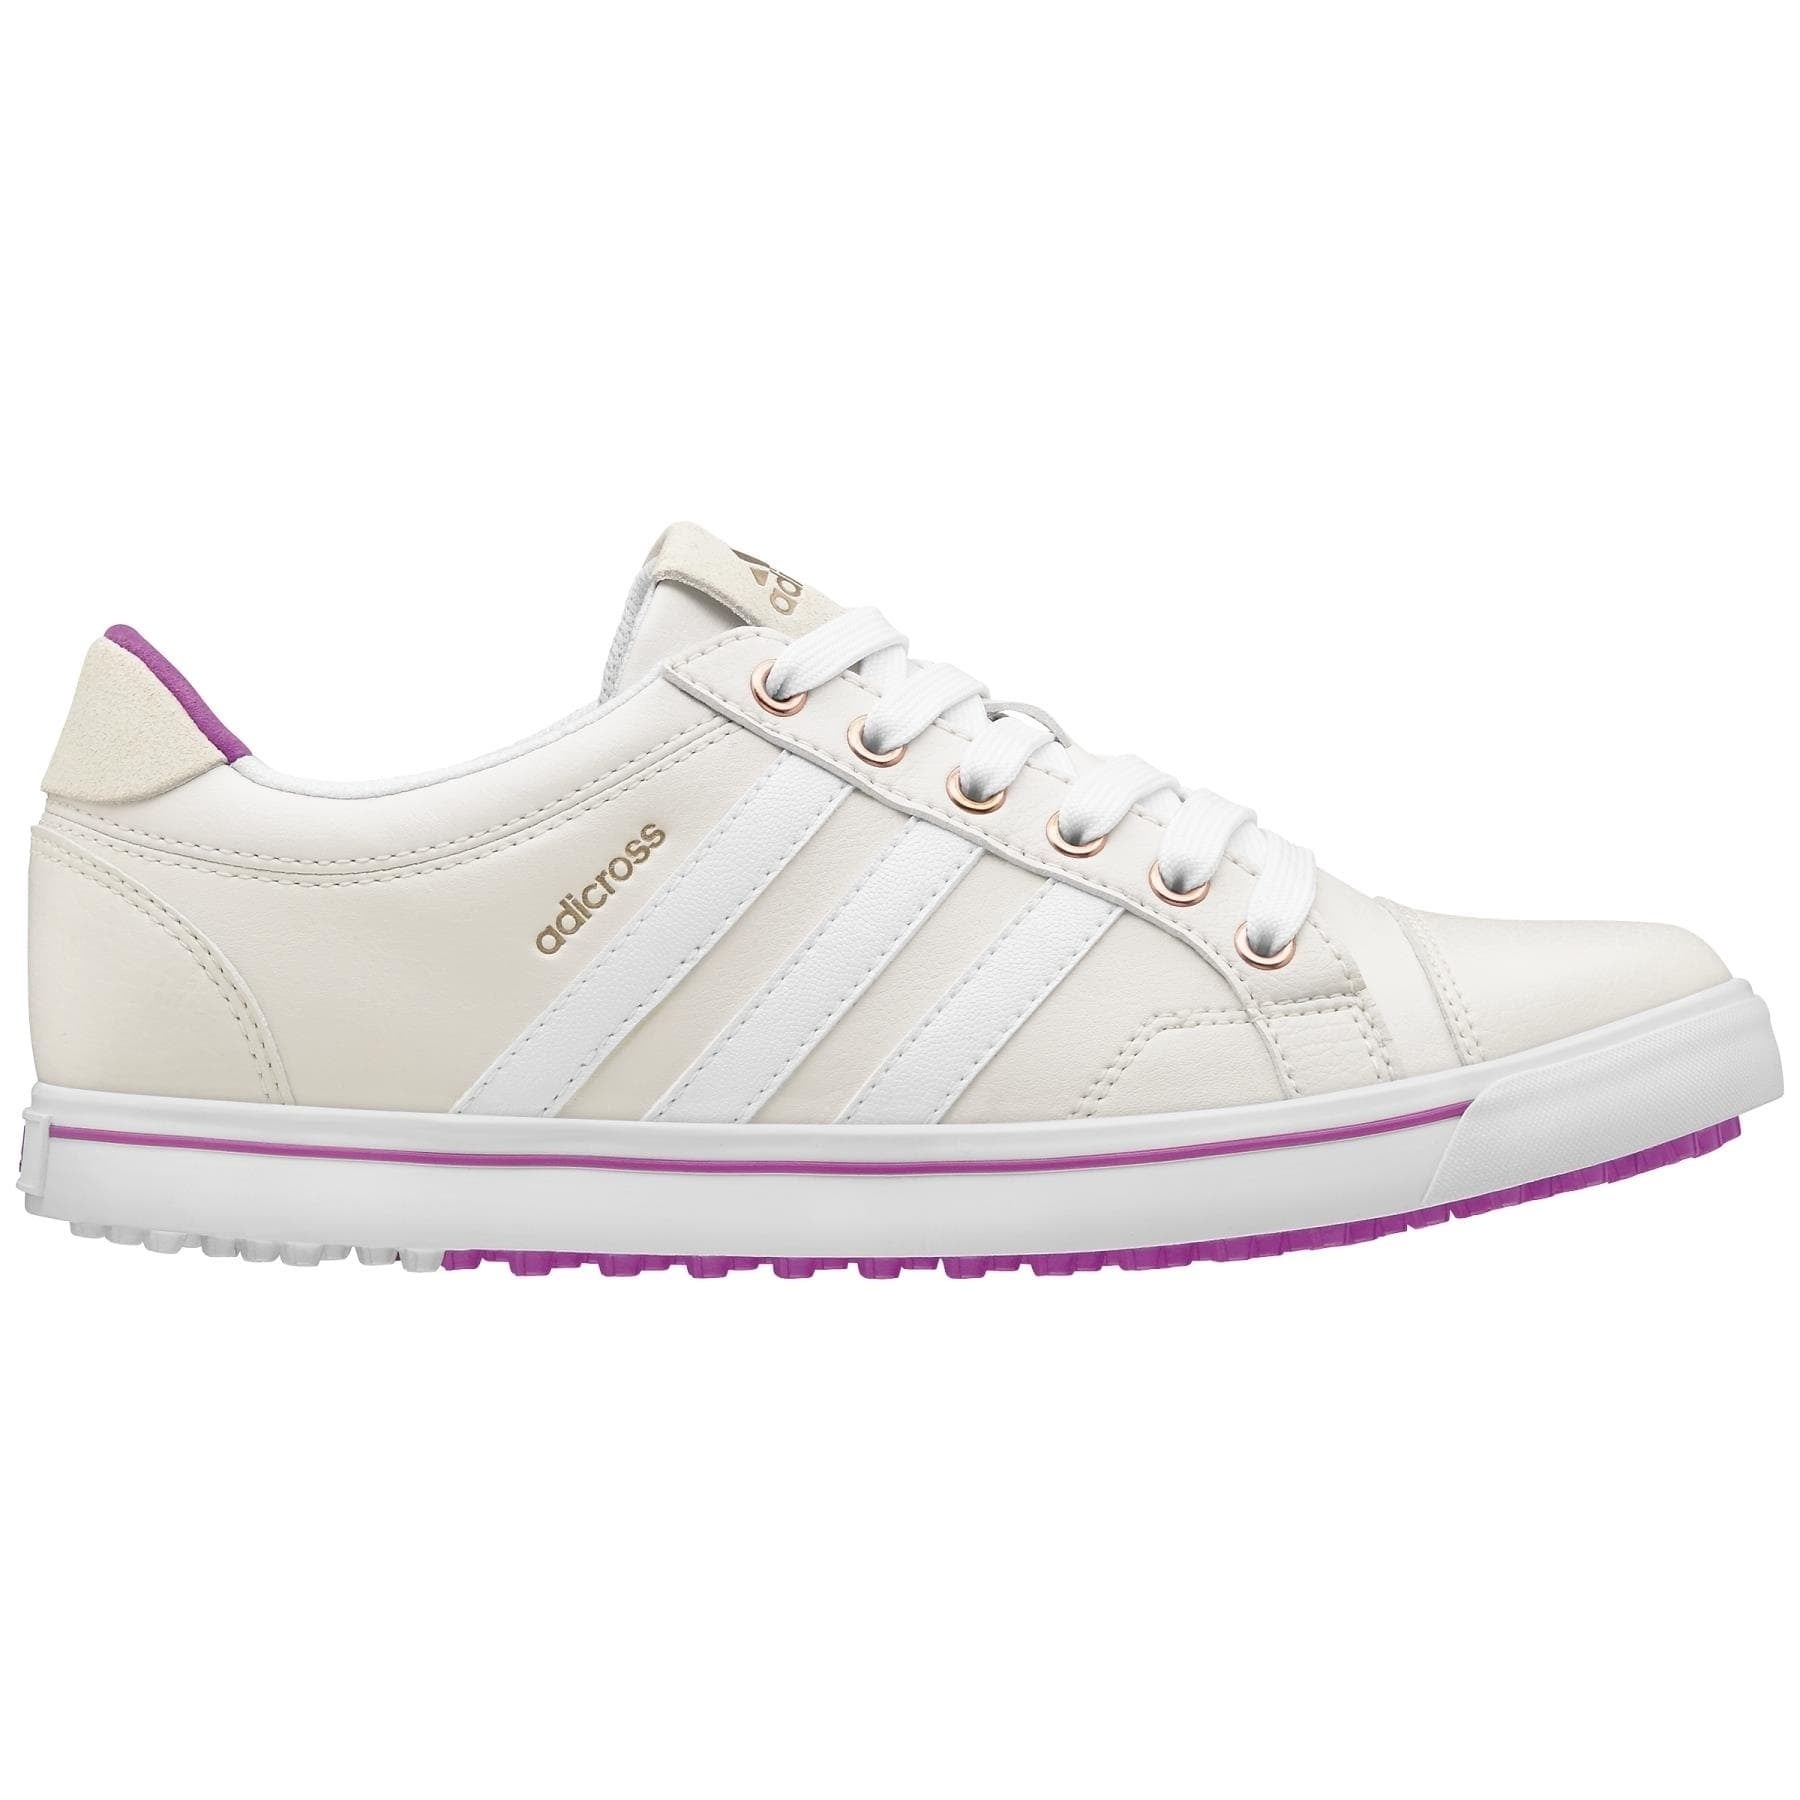 cheap for discount ff908 70e9e Buy Adidas Women s Golf Shoes Online at Overstock   Our Best Golf Shoes  Deals